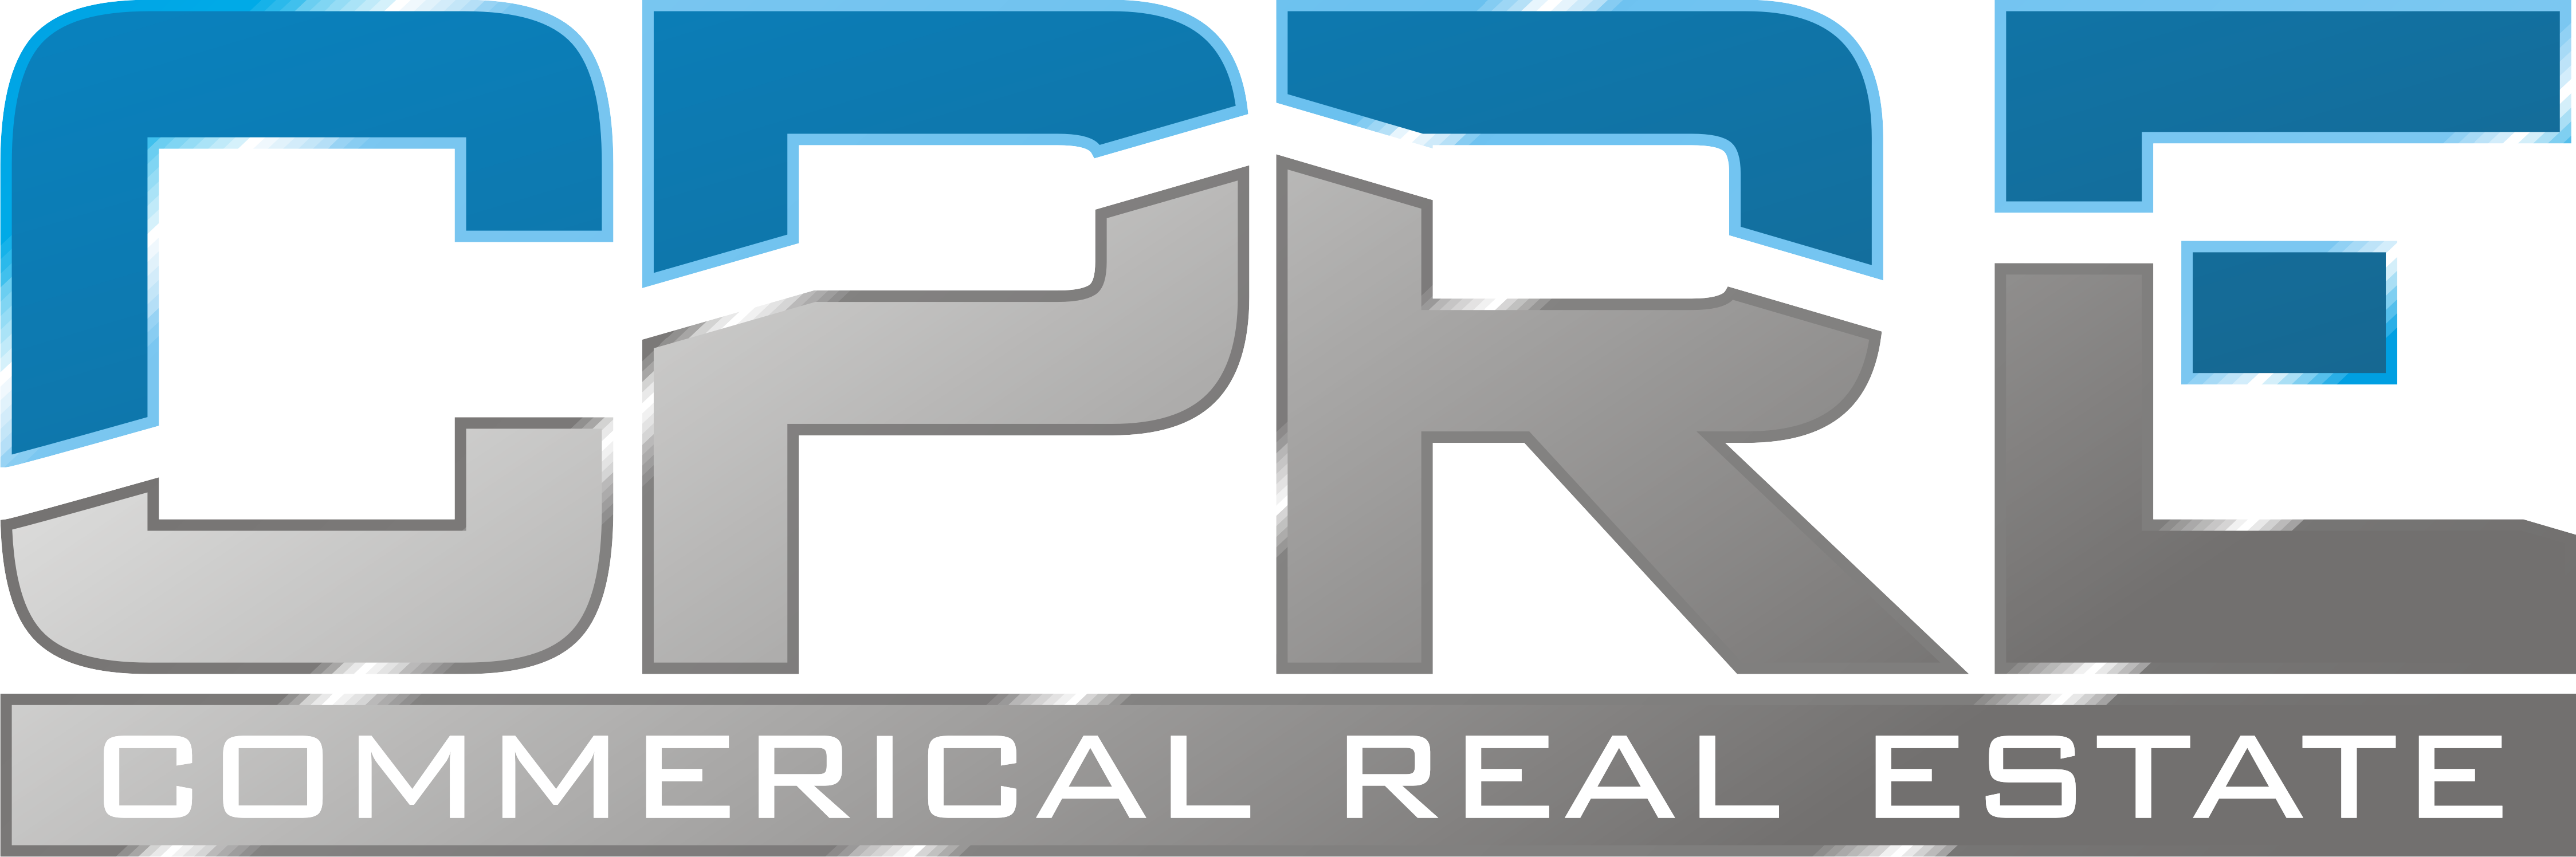 Commerical Real Estate Logo       CPRE